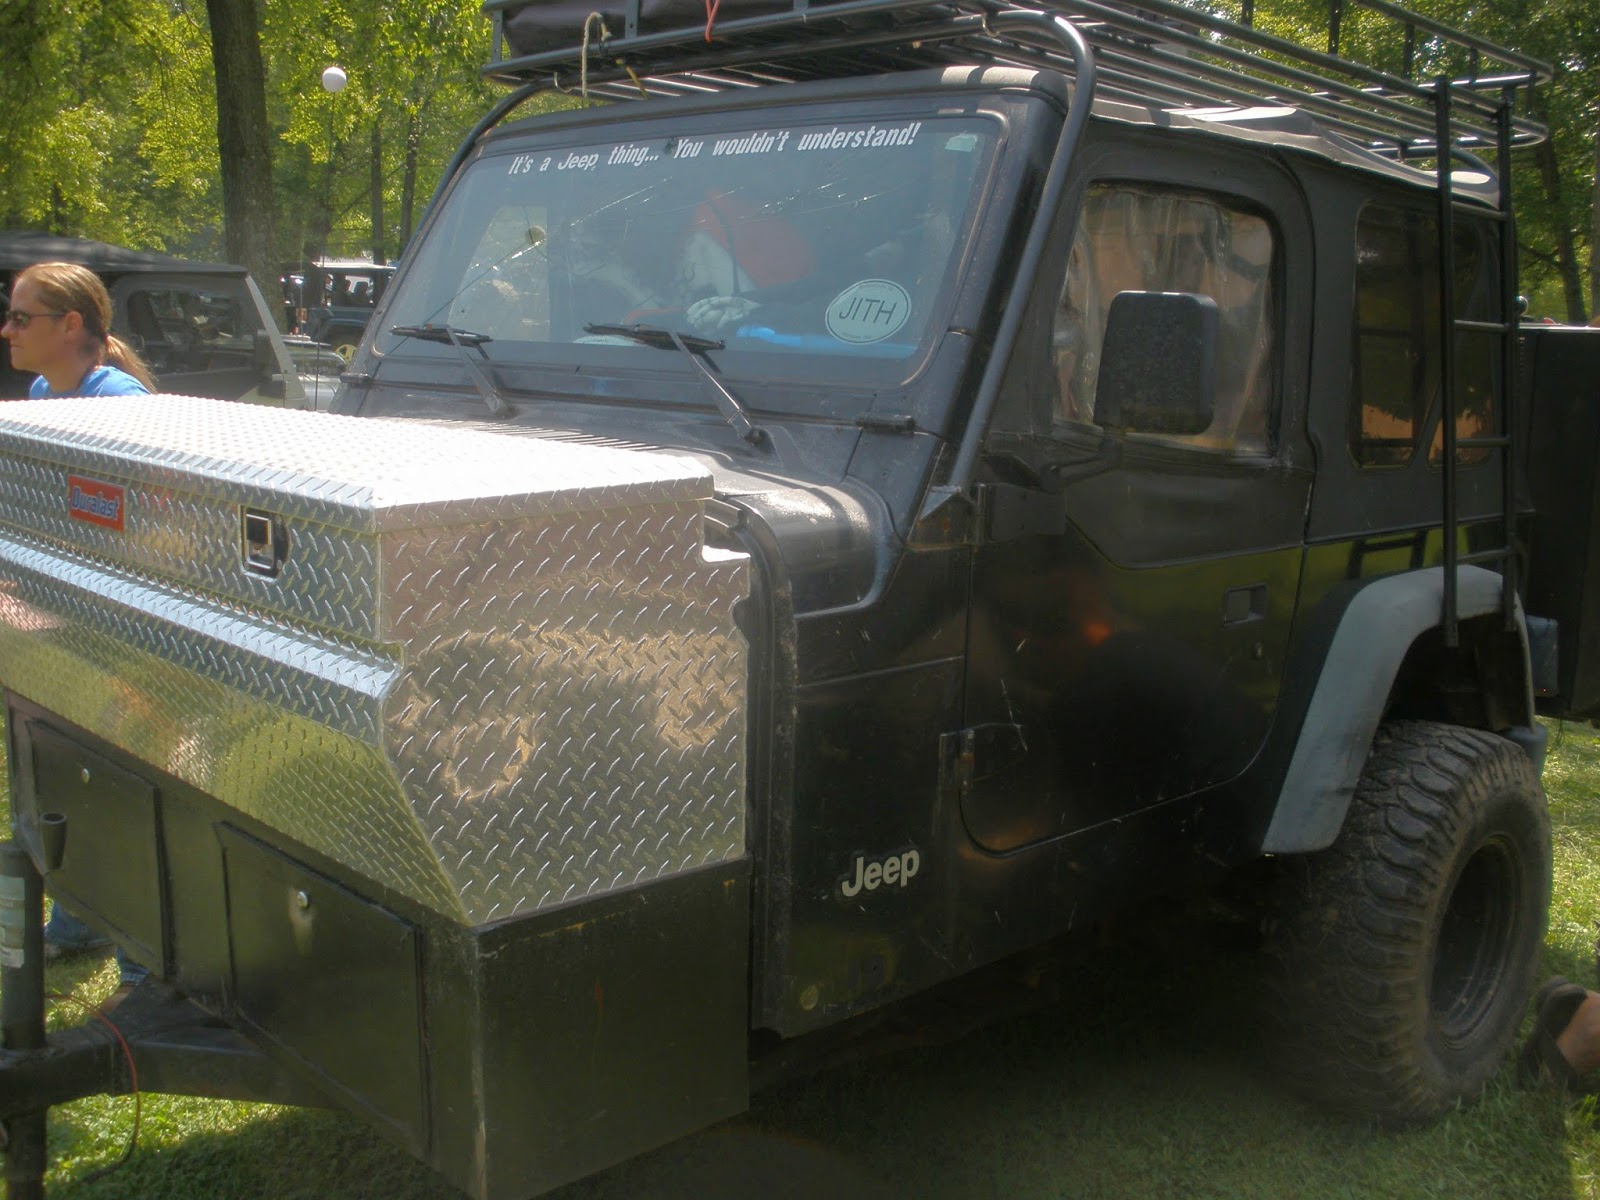 Jeepn'stuff: It's a Jeep thing, you wouldn't understand